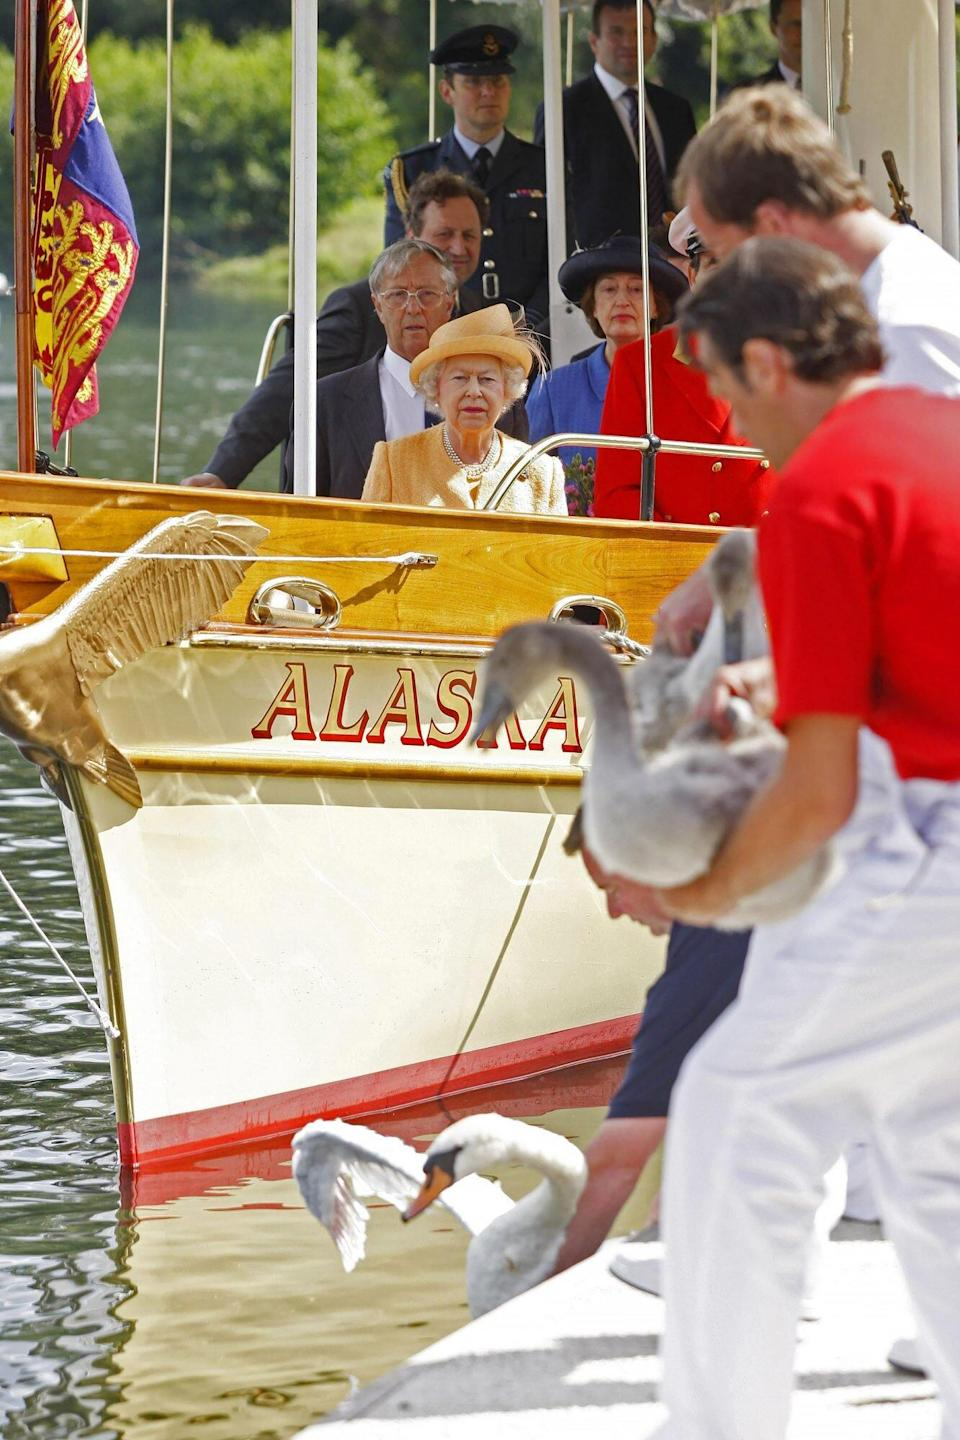 The queen attends the annual swan upping